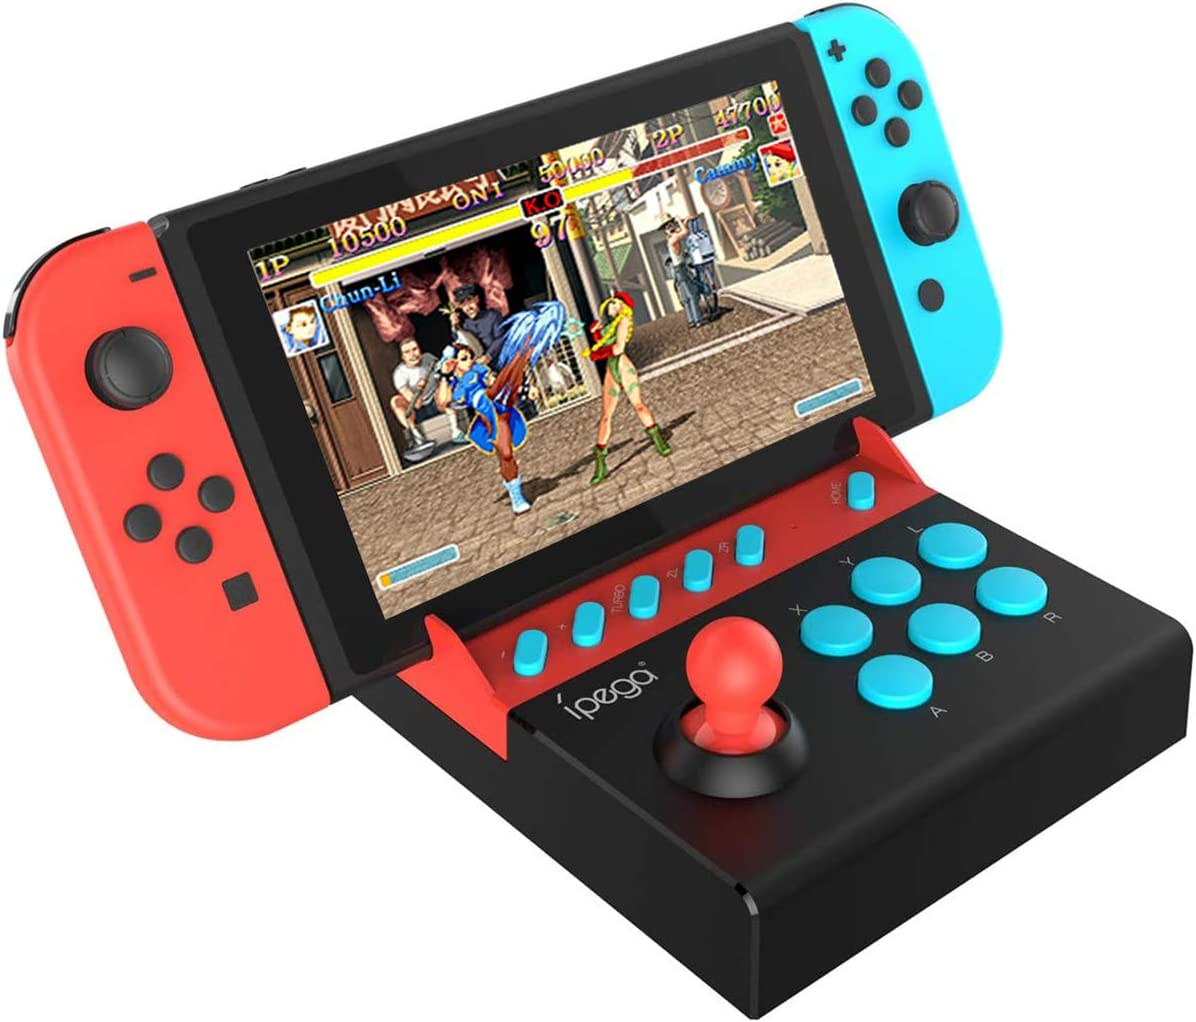 PG-9136 Gamepad Trigger Controller Mobile Joystick Compatible N-Switch Console Single Rocker Control Games (Such as Mario Series, Stree Fighter2, etc.)